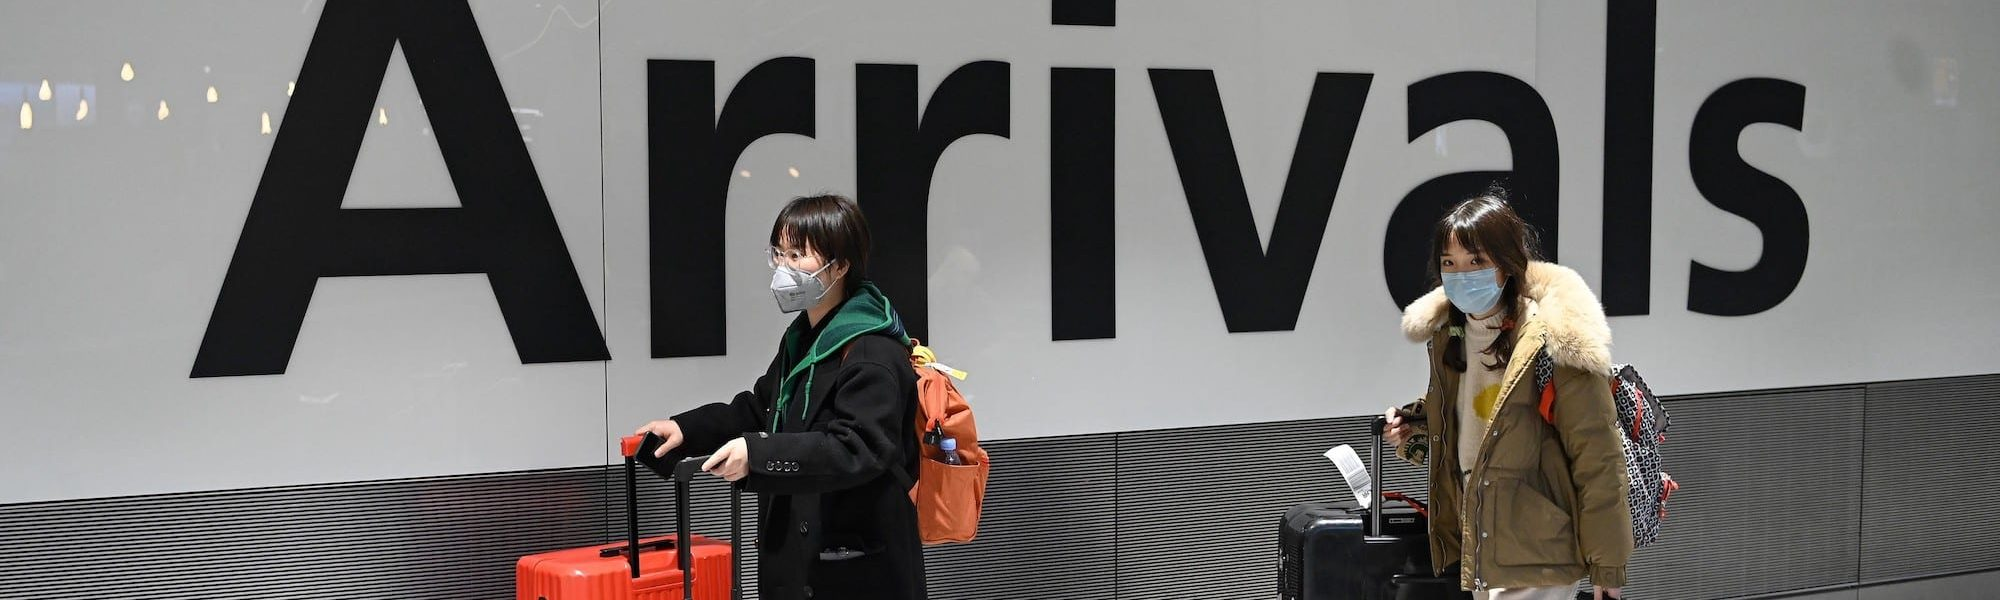 How To Travel Safely During Coronavirus, The Deadly Pandemic?